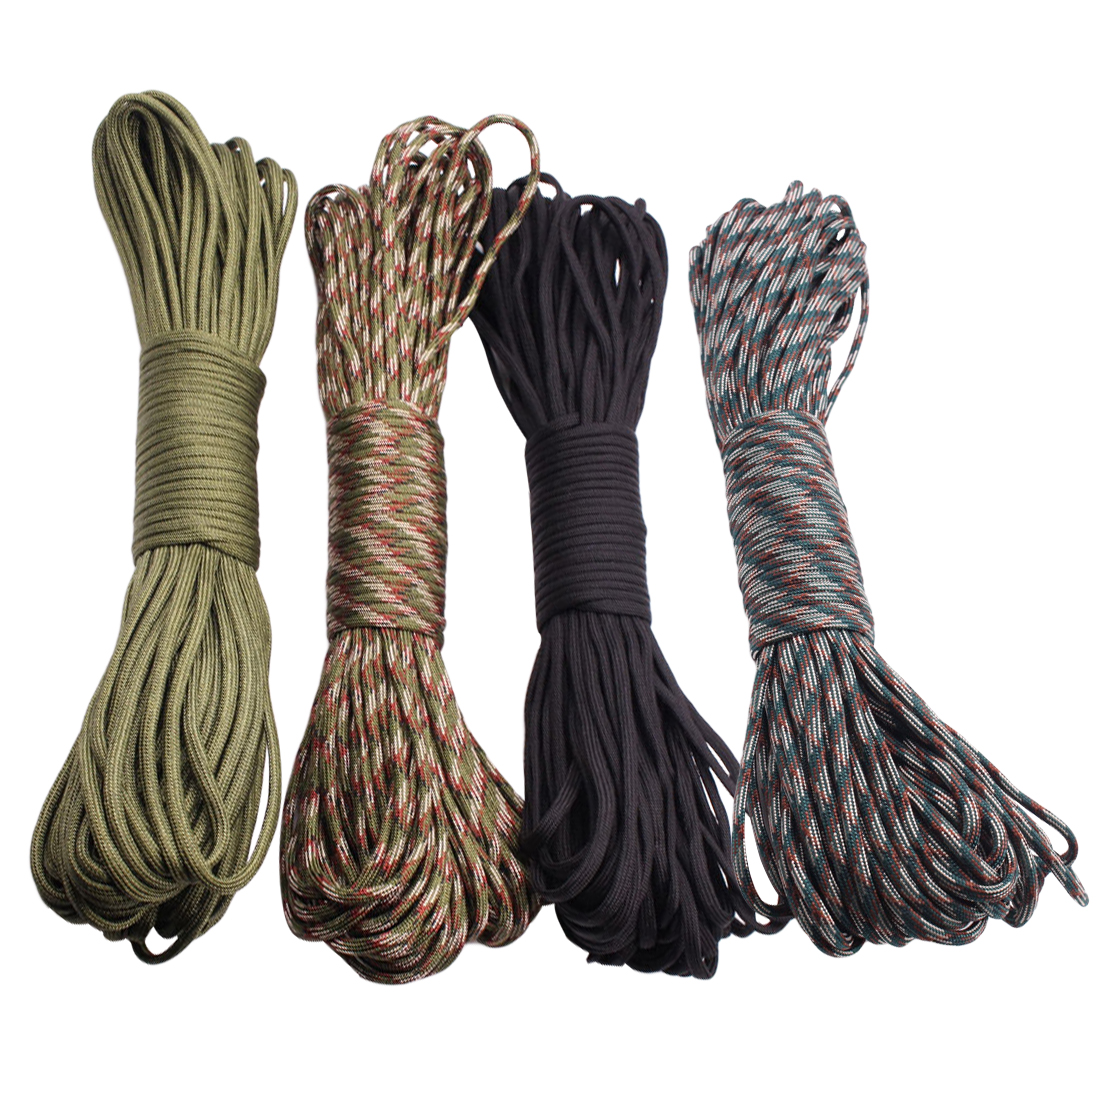 550 Parachute Cord Lanyard 100FT 31m Climbing Camping Survival Equipment Rope